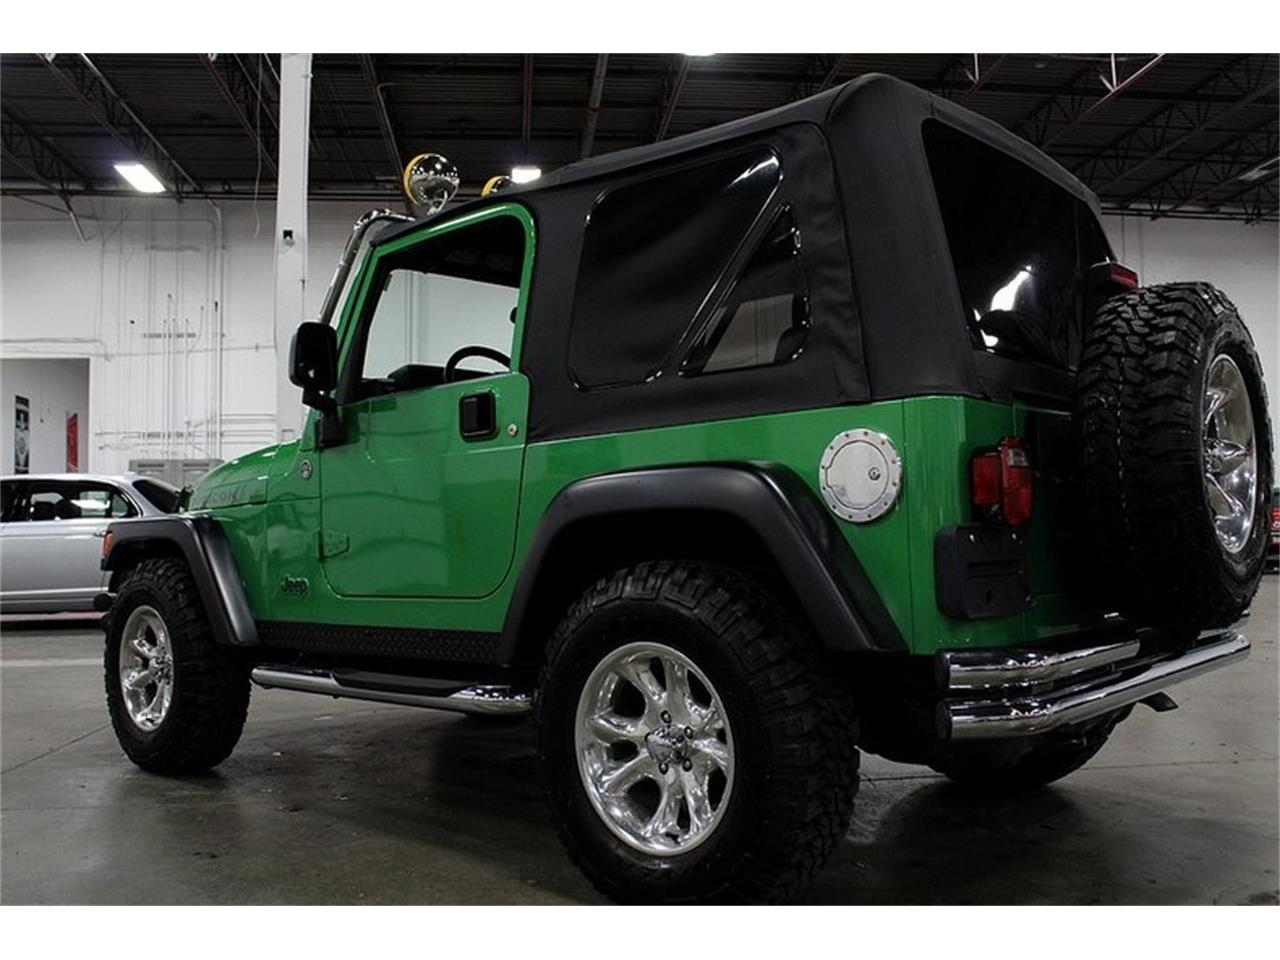 Large Picture of '05 Jeep Wrangler located in Michigan - $28,900.00 - Q10Z